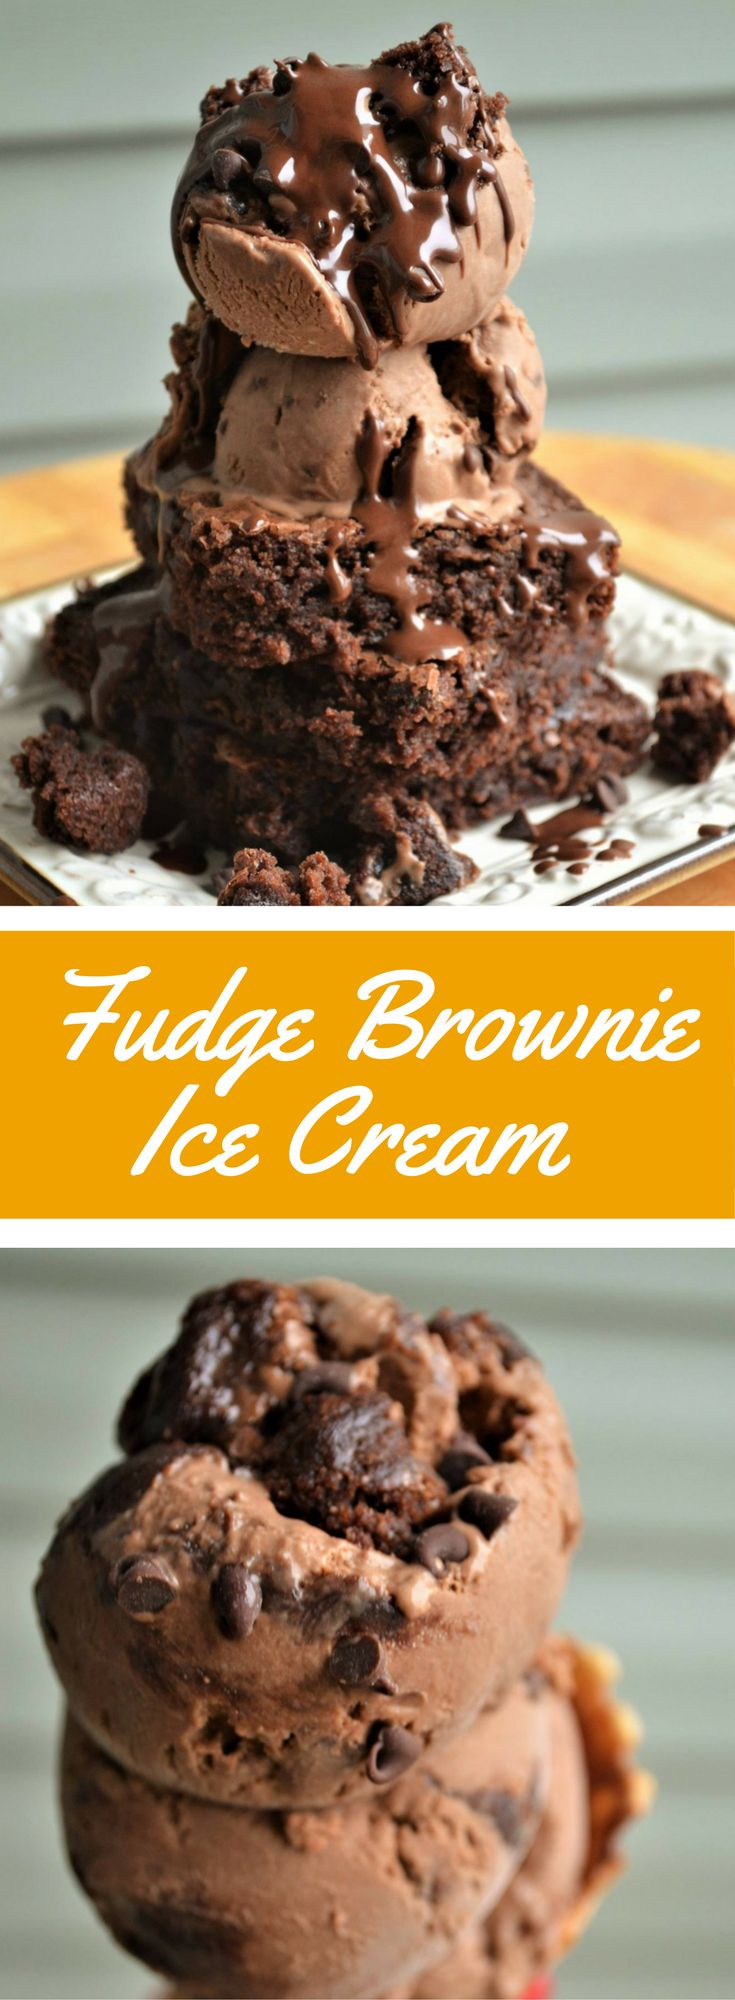 Rich homemade chocolate ice cream recipe with chunks of gooey fudge brownies and chocolate chips! (cooked brownie frosting)